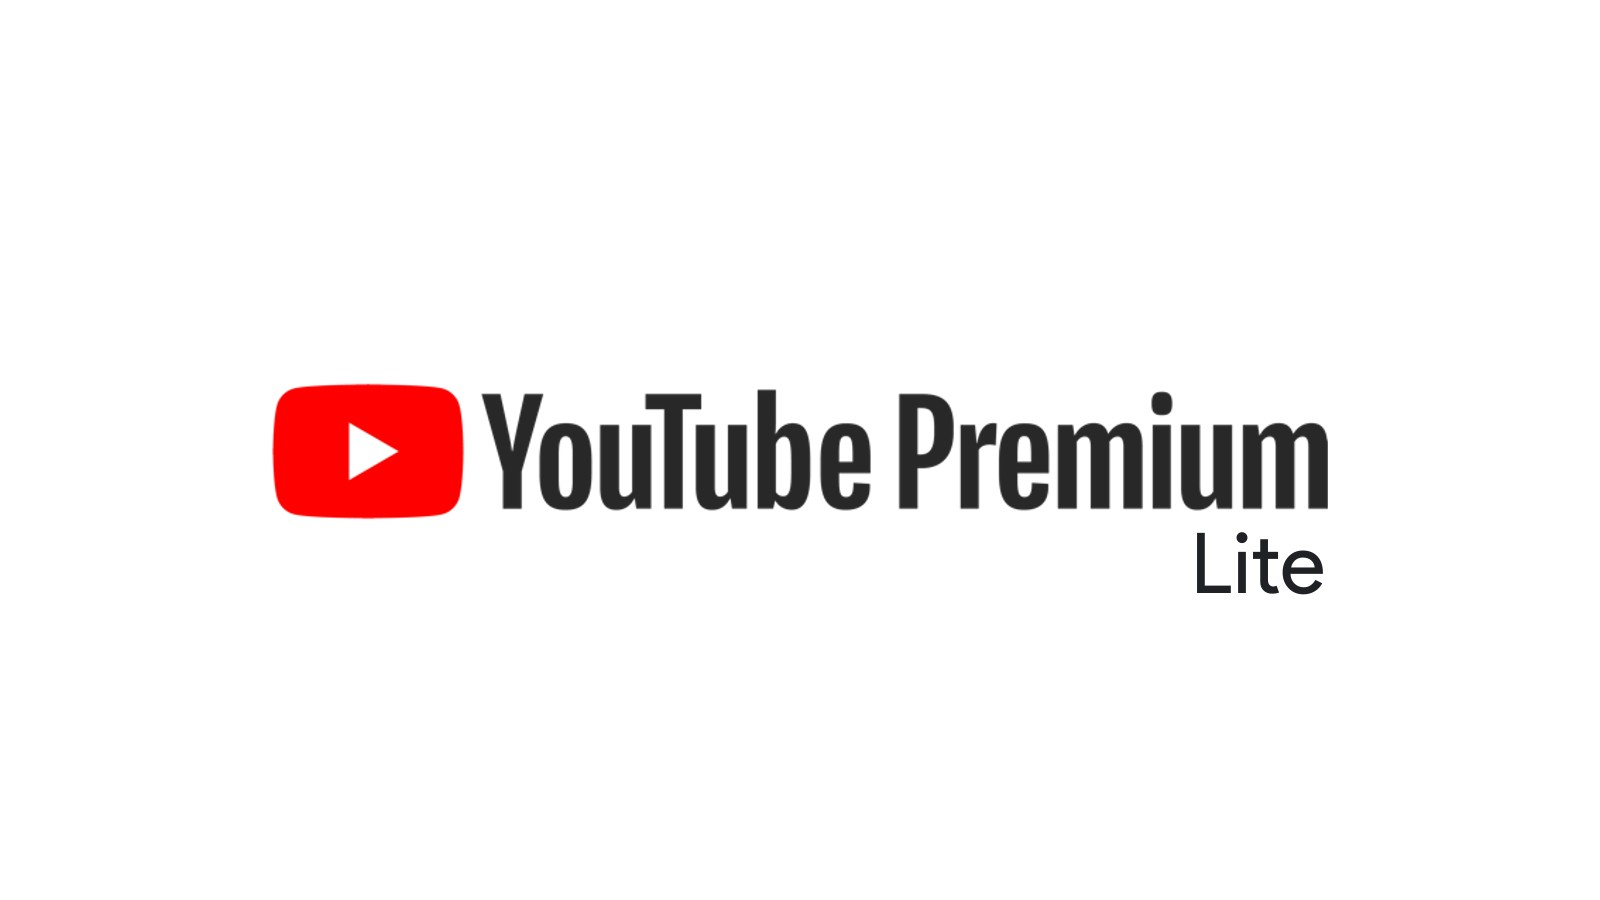 Youtube is testing a cheaper 'Premium Lite' subscription that only rids you of ads